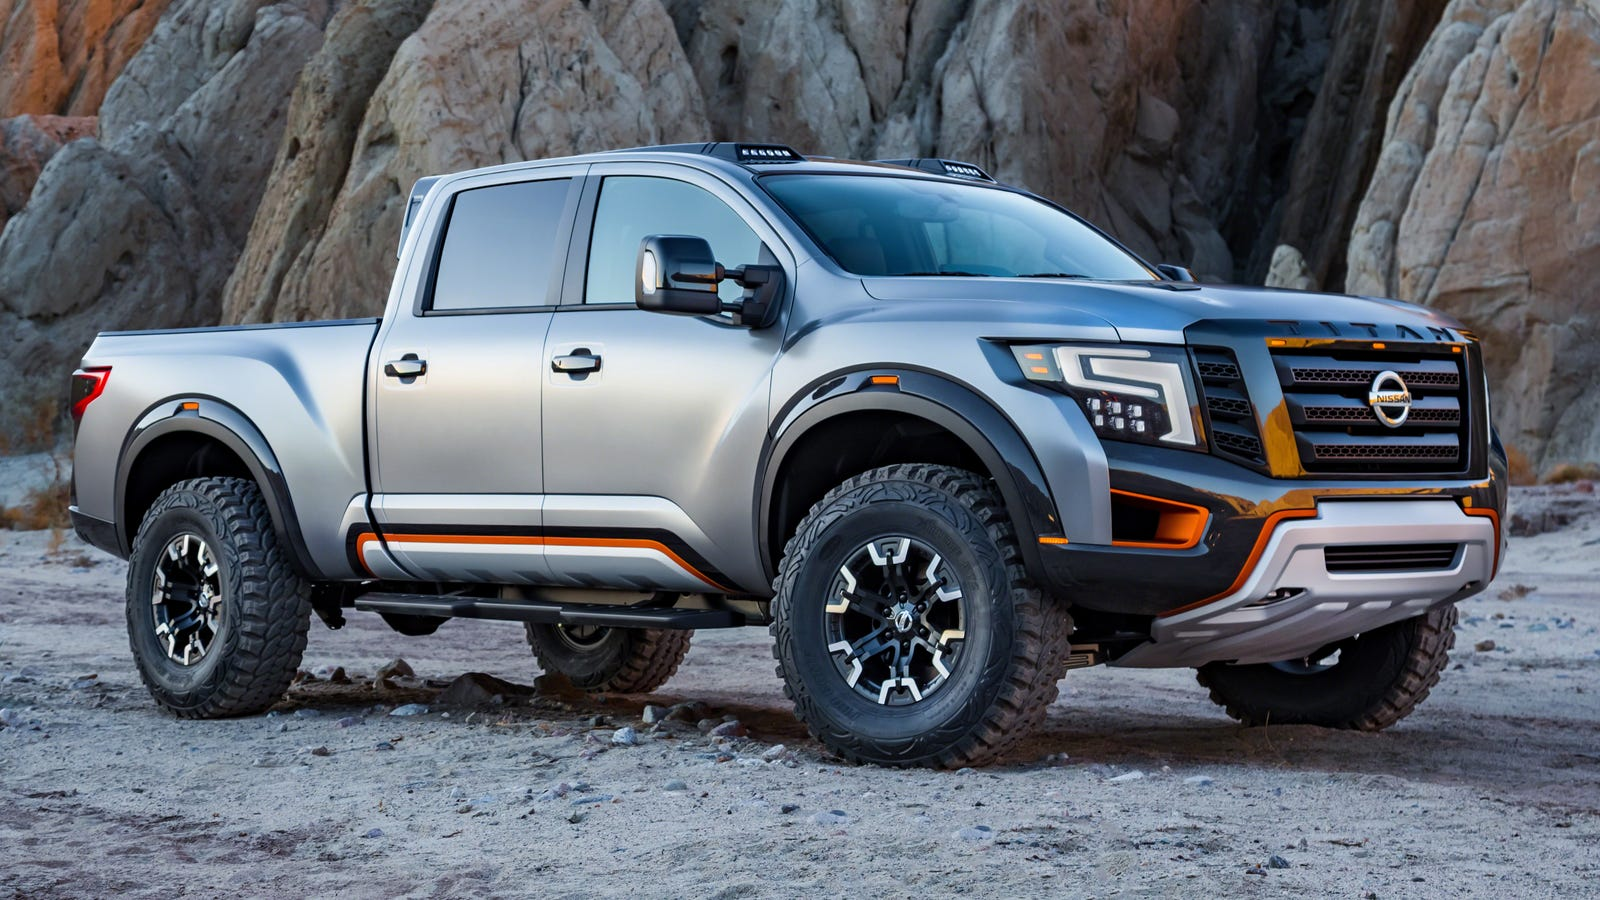 Nissan Diesel Truck >> The Nissan Titan Warrior Concept Asks Bro Do You Even Truck